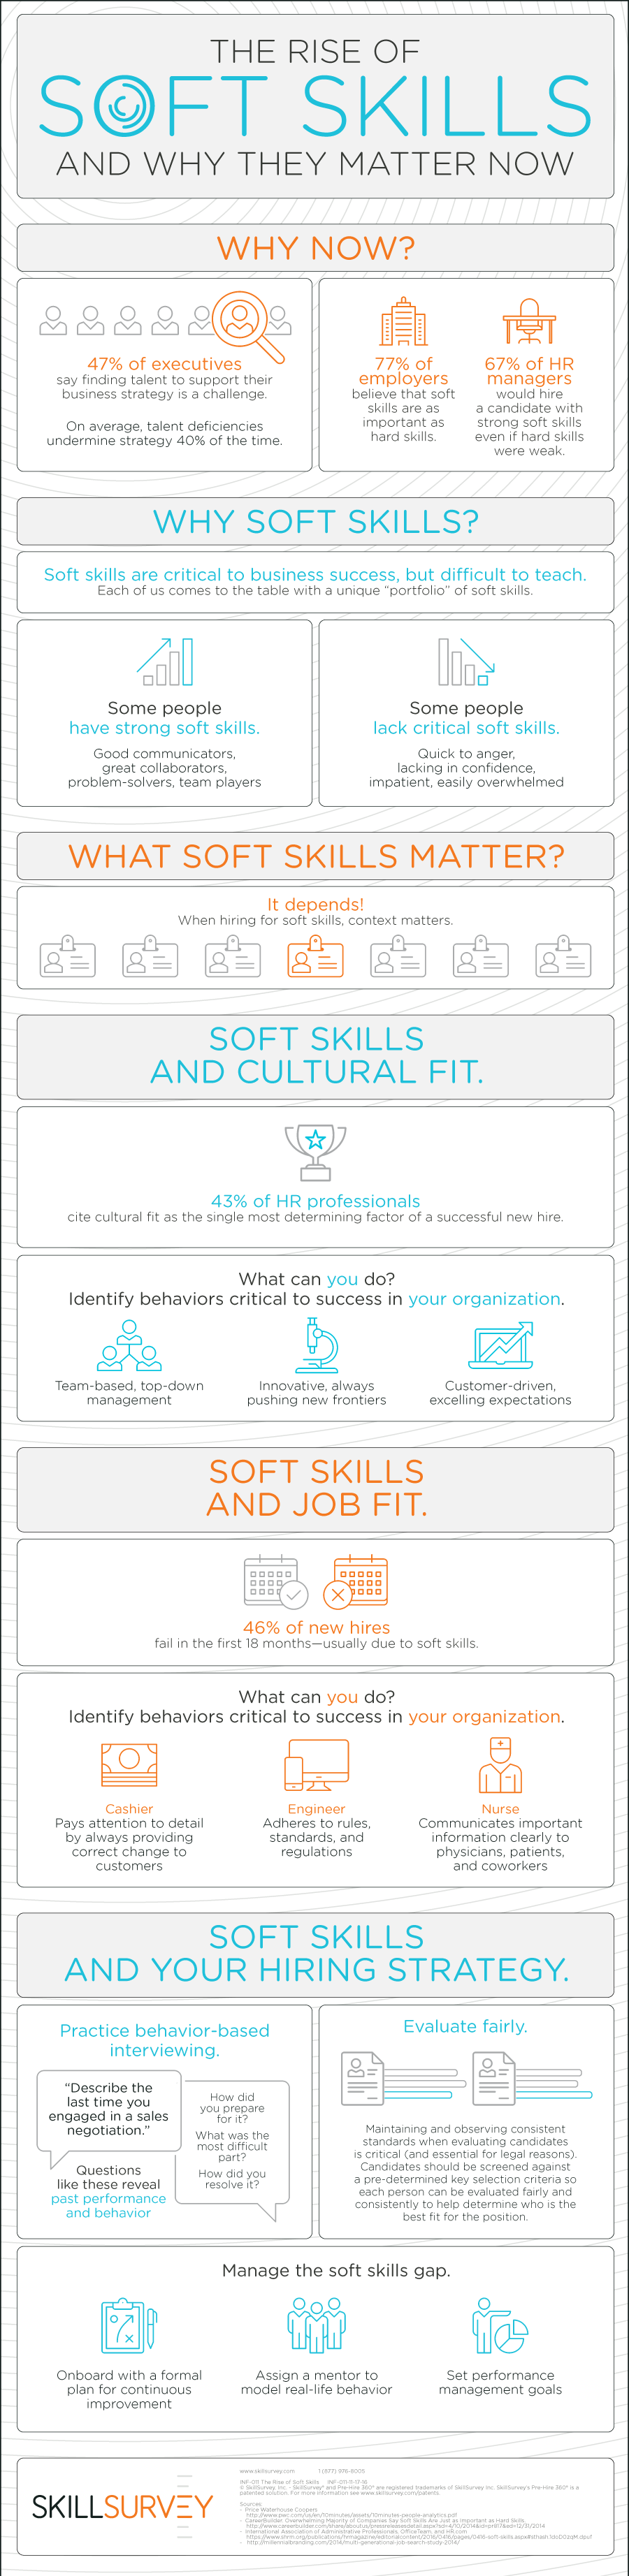 inf-011-the-rise-of-soft-skills-final